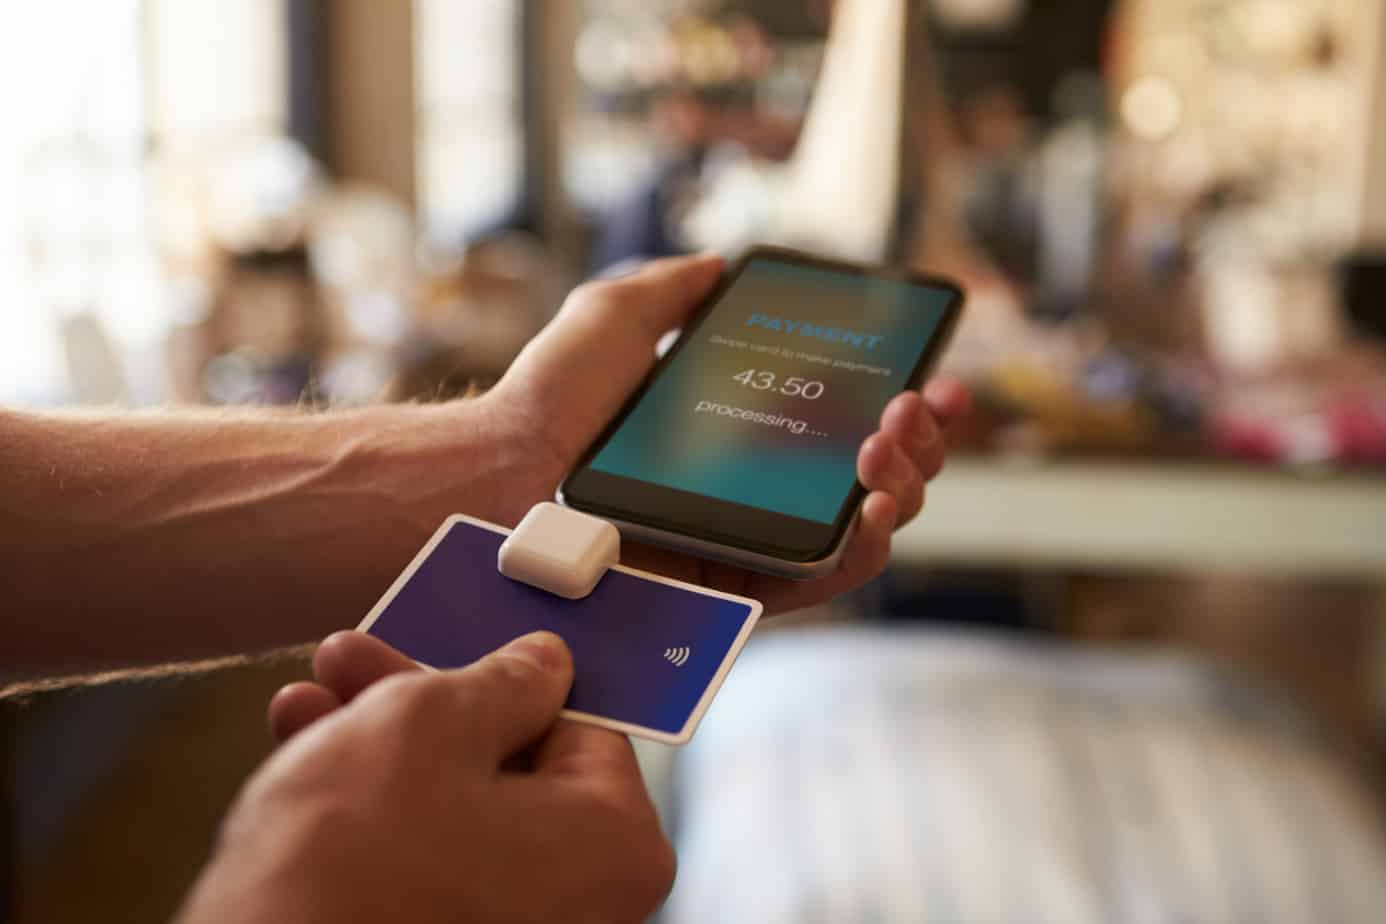 credit card payment app attached to mobile phone 67534402